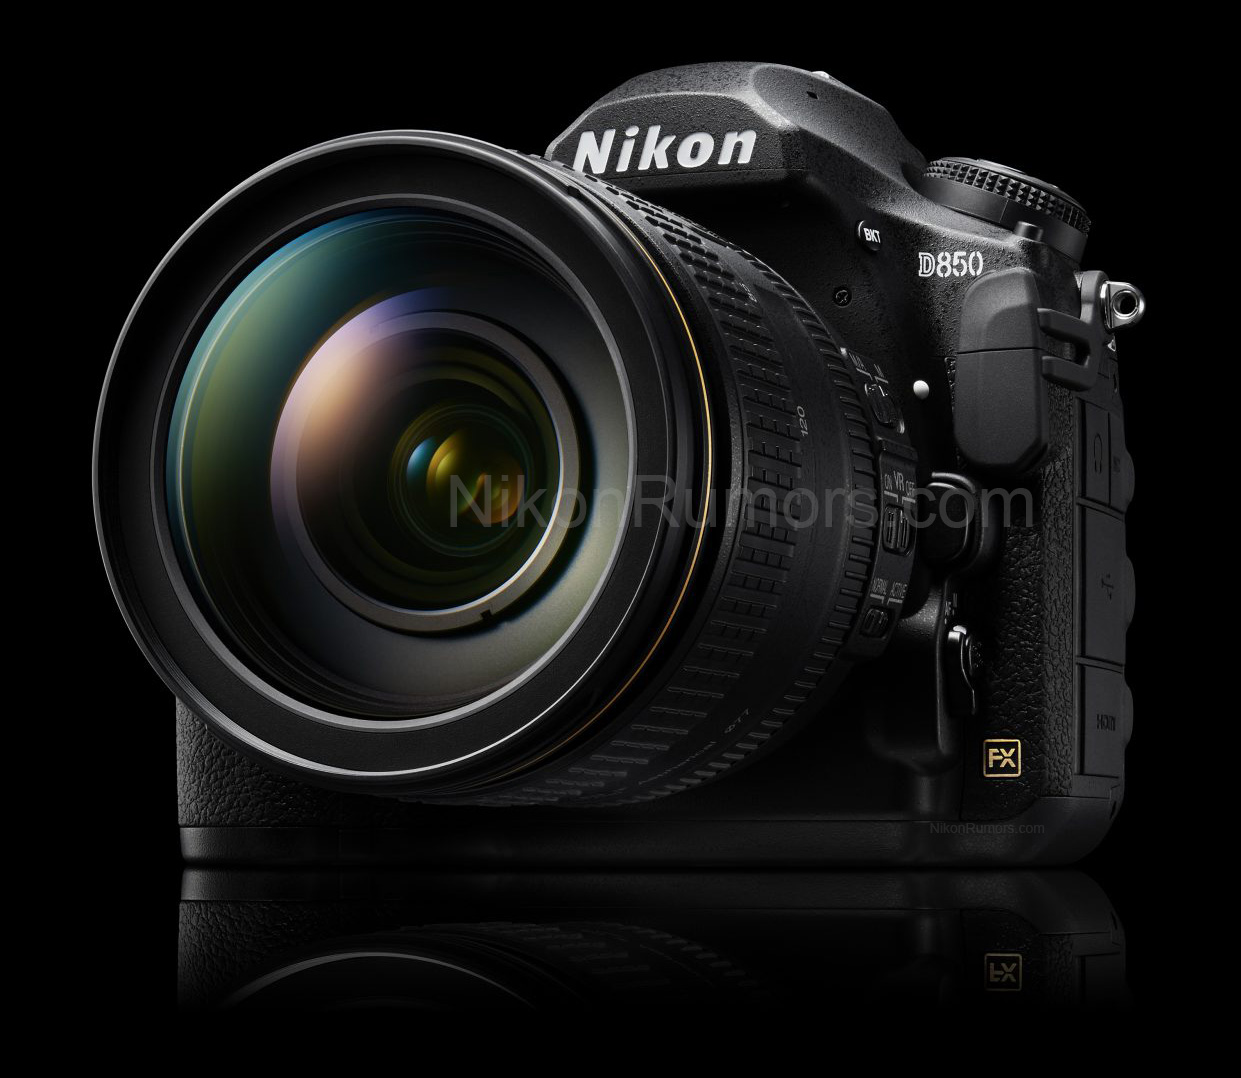 More Nikon D850 Specs And Images Leaked Daily Camera News